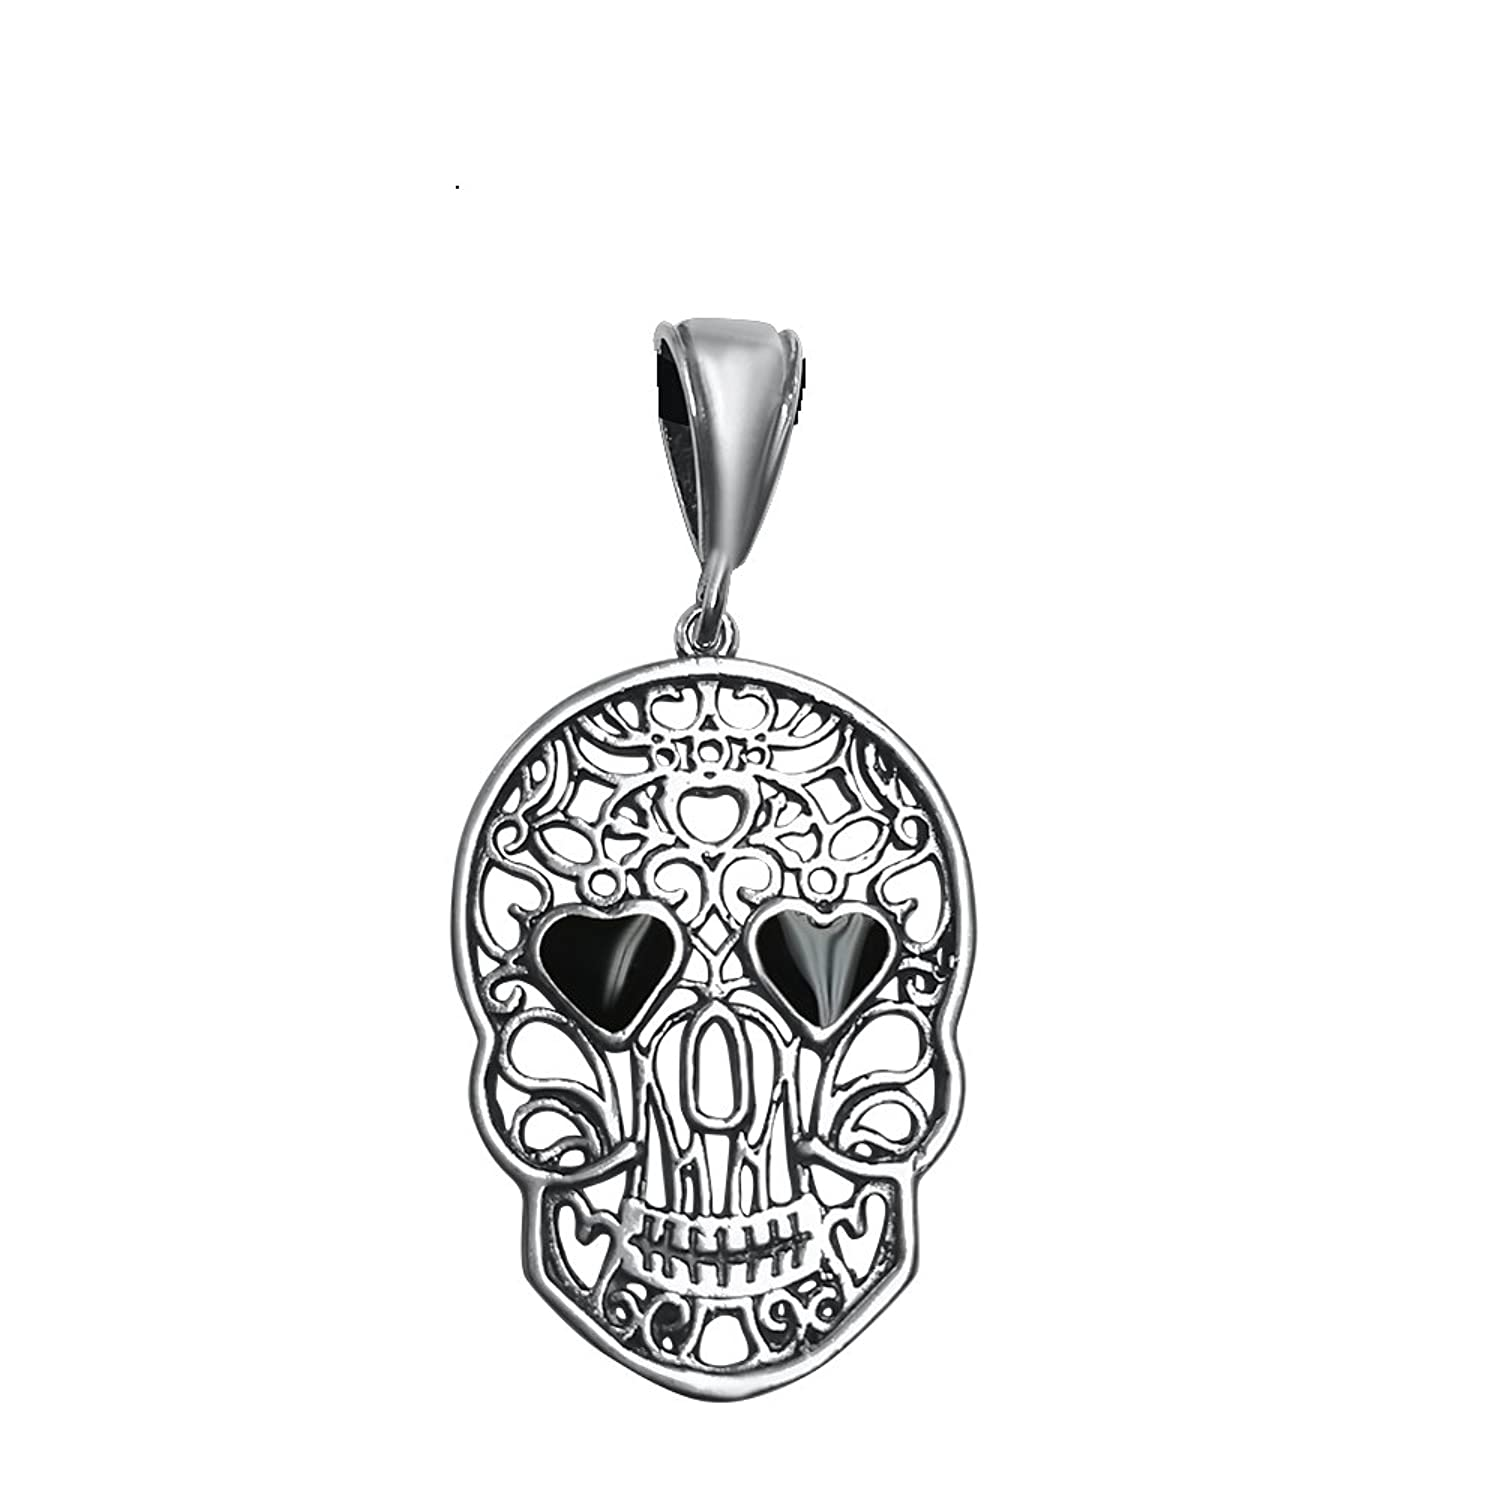 Skull Head with Black Heart Shaped Eyes Pendant Necklace